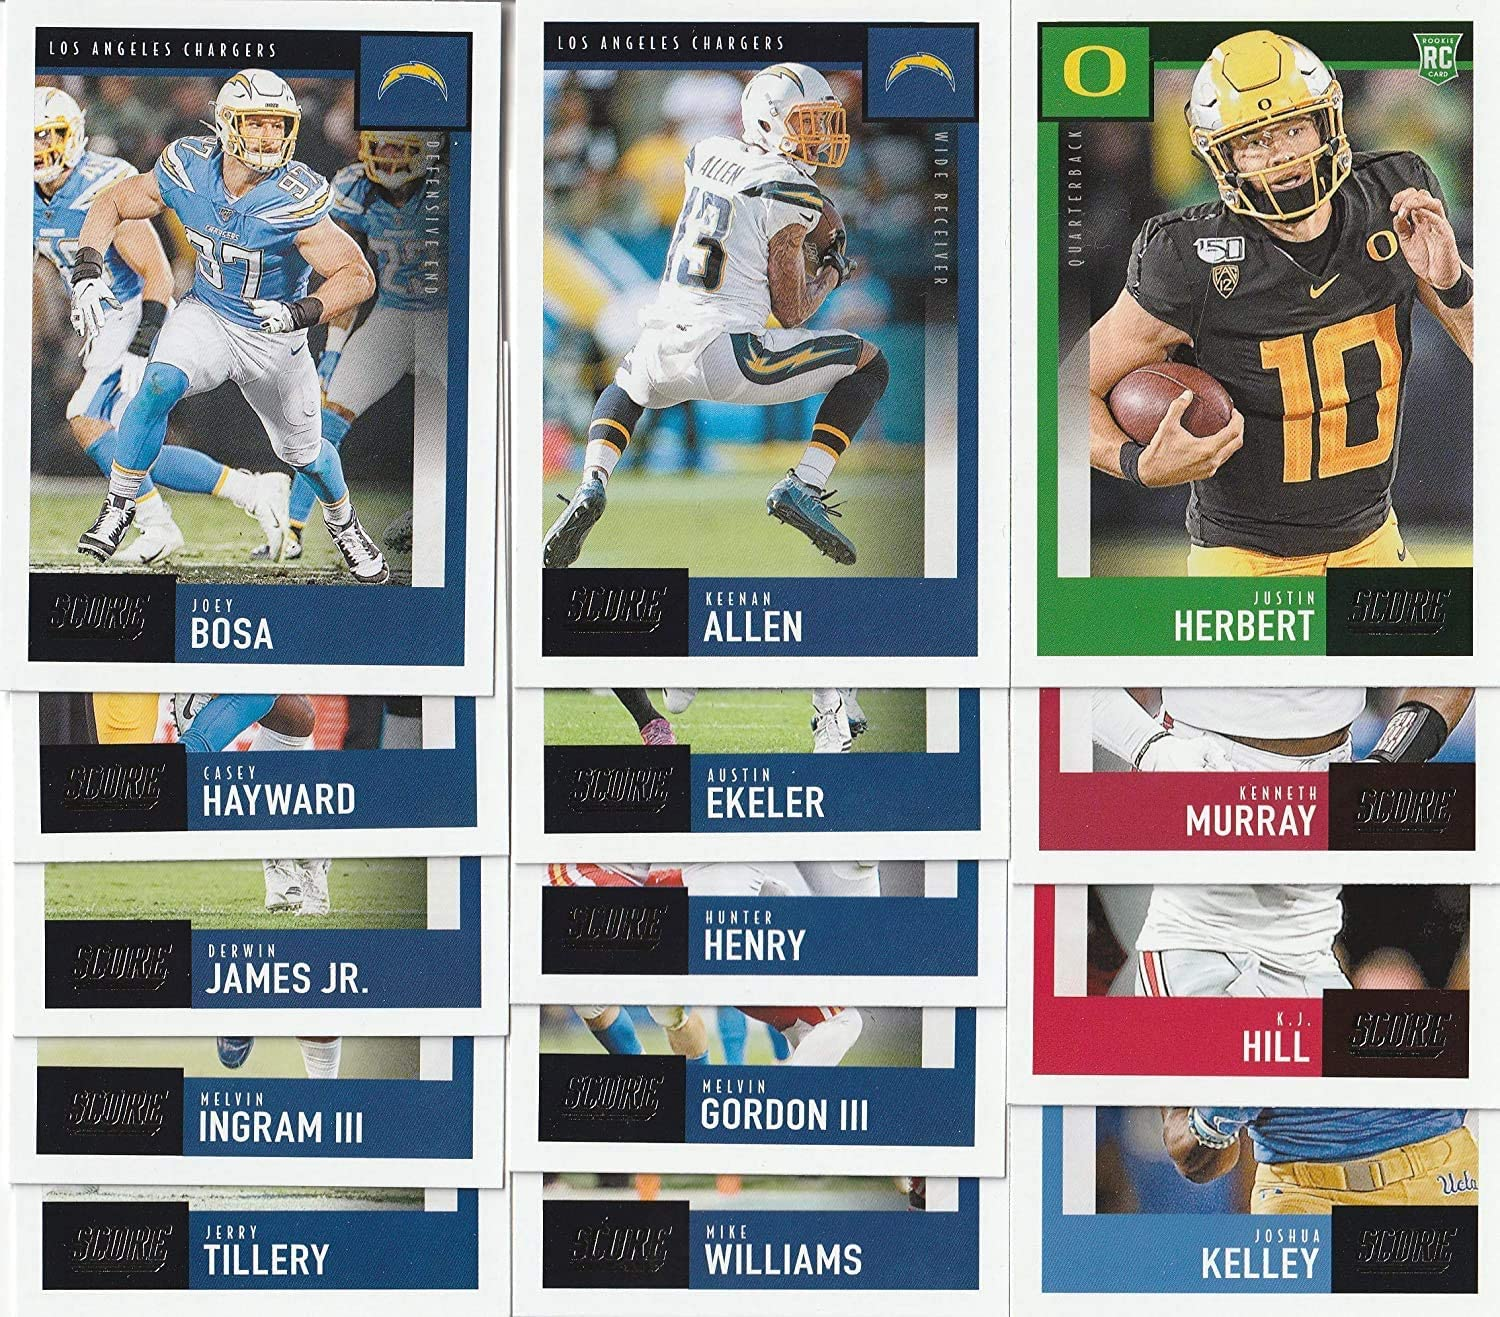 2019 2020 Panini Score Football Los Angeles Chargers 2 Team Set Lot Gift Pack 25 Cards W/Drafted Rookies Includes Justin Herbert RC